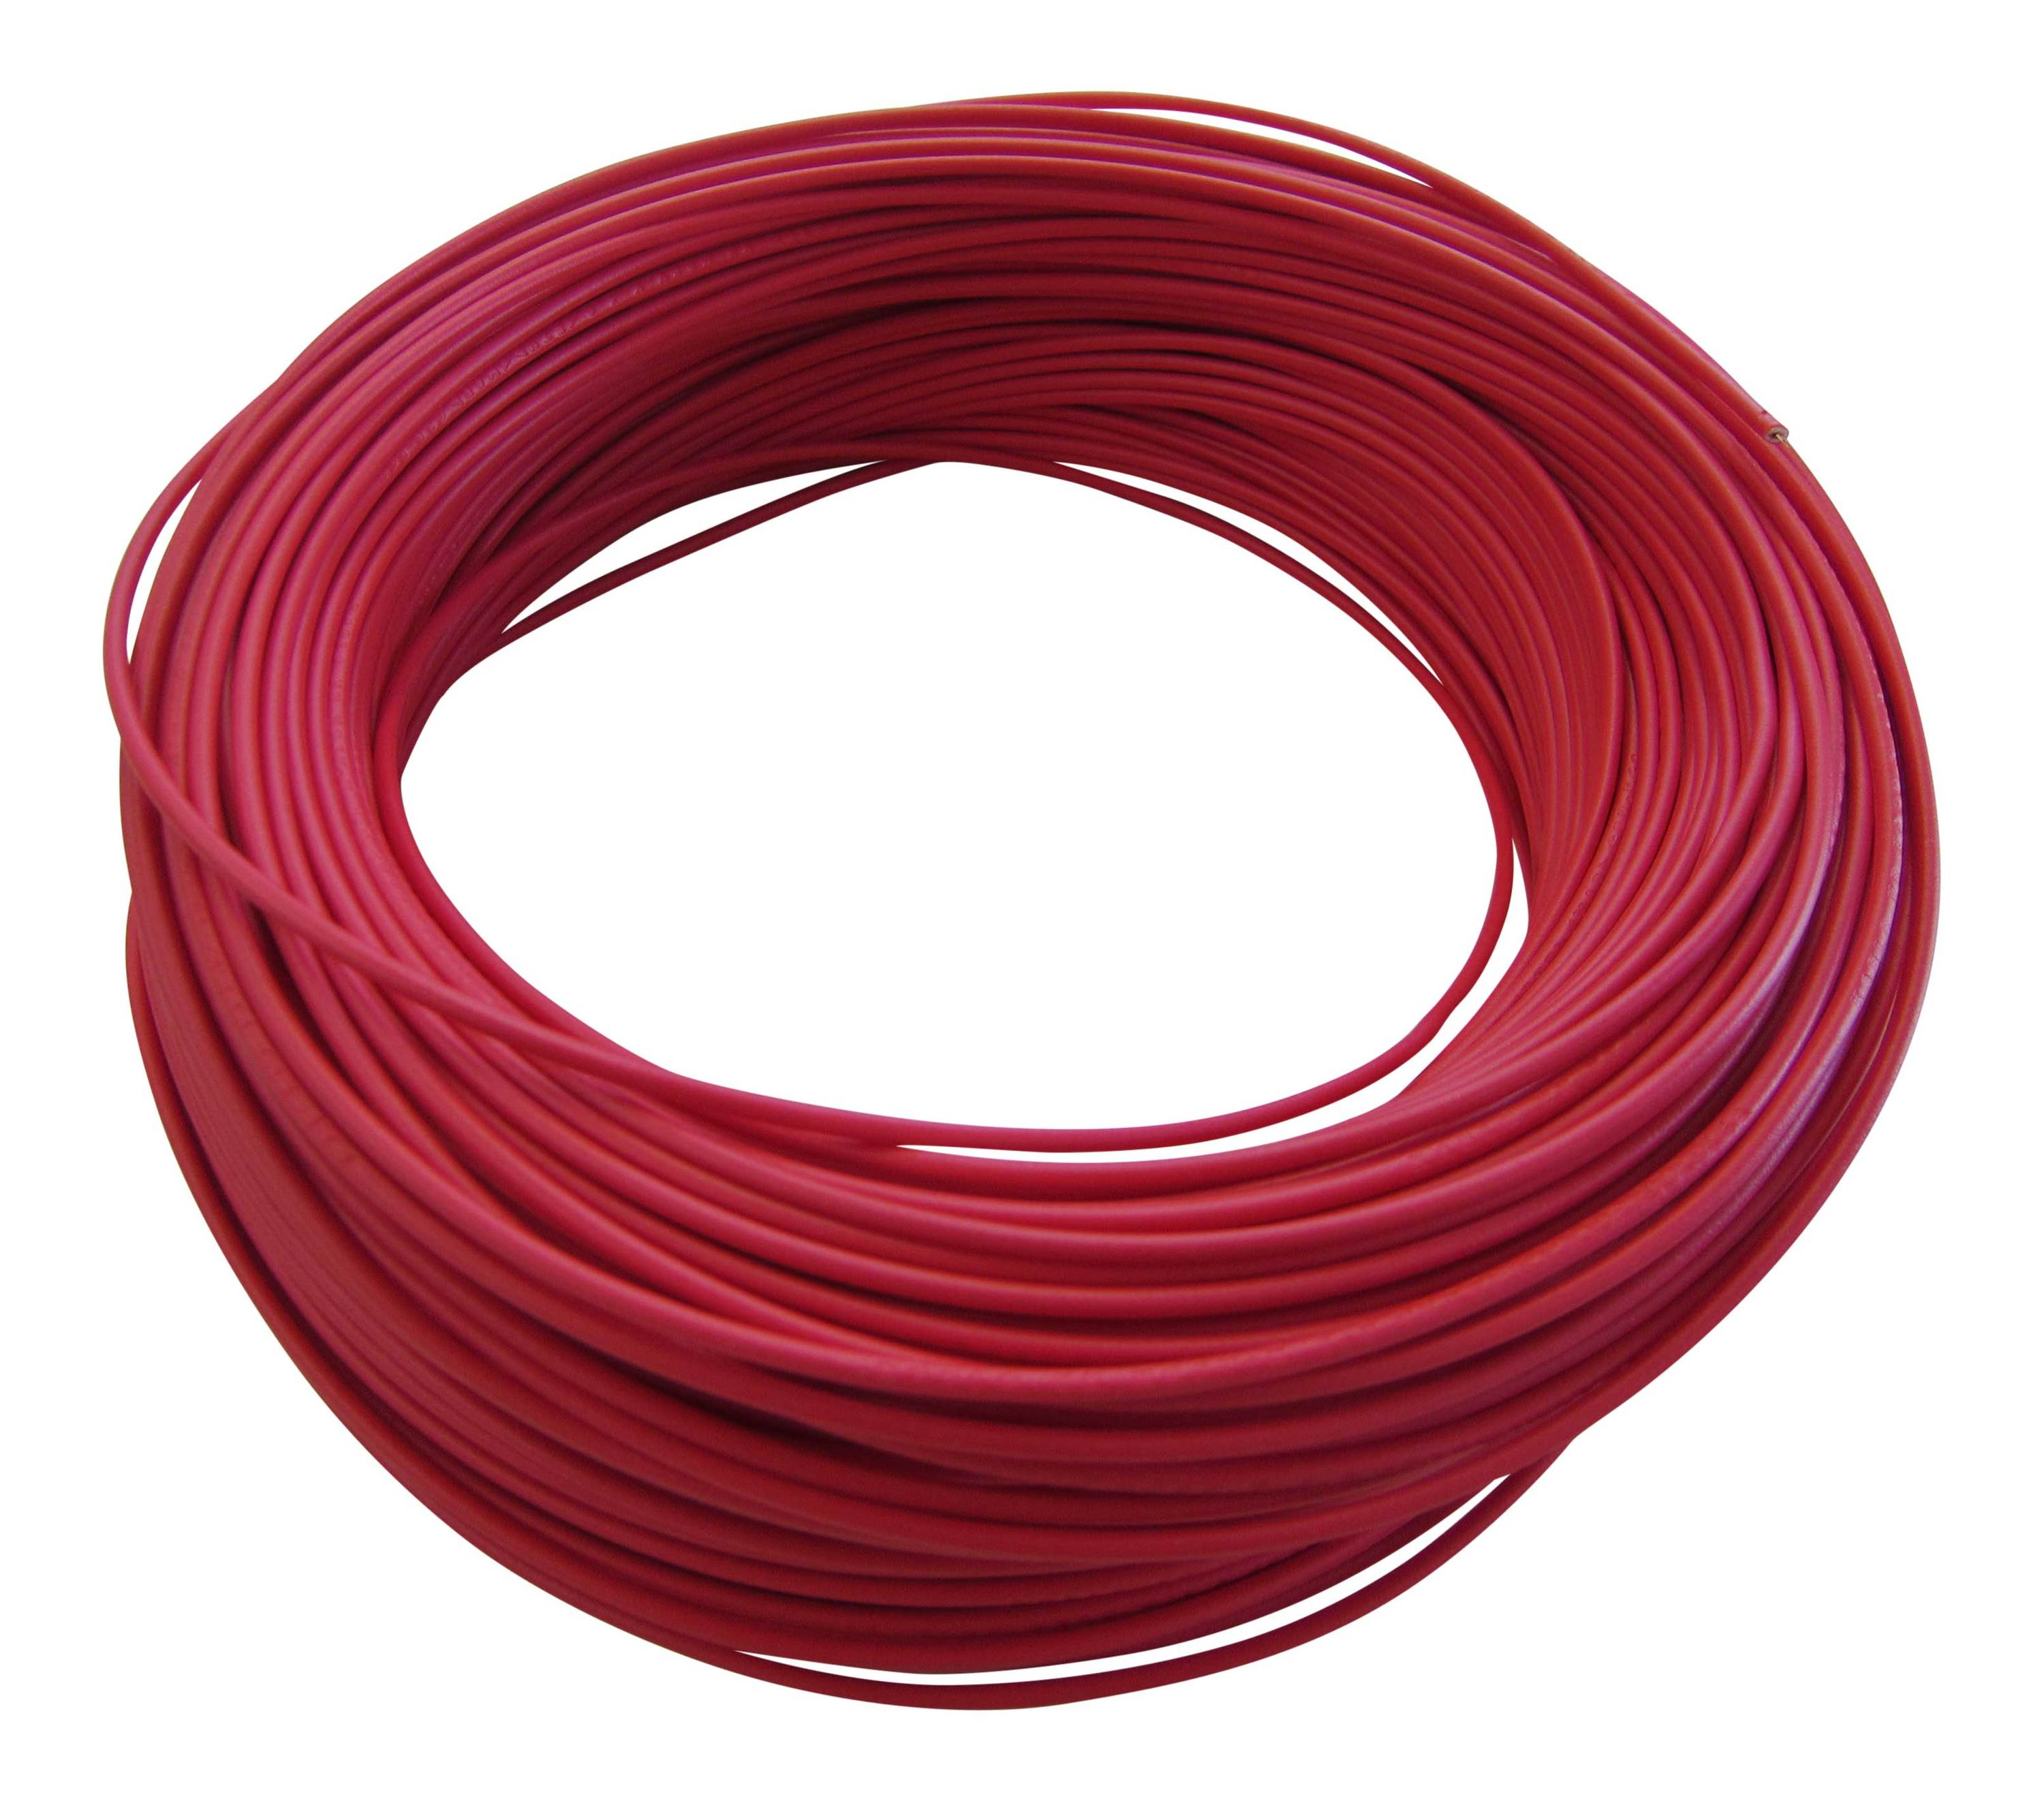 0,31¤/m KFZ LKW Kabel Litze Leitung Flexible FLRy 0,75mm² 20m Rot M. in Germany